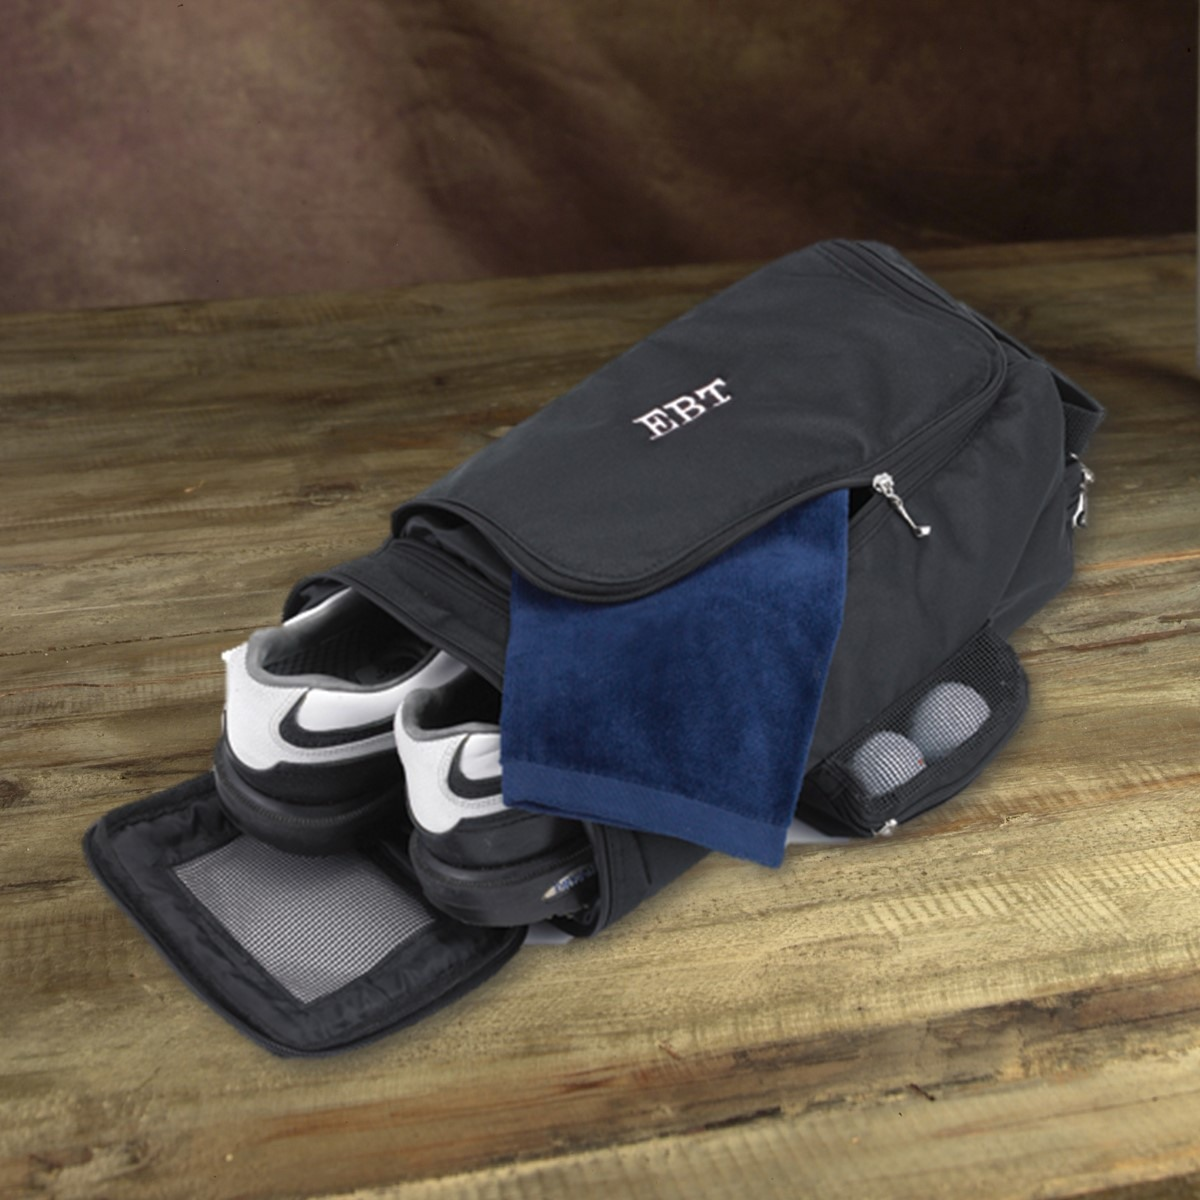 Personalized Golf Shoe Bag 9503